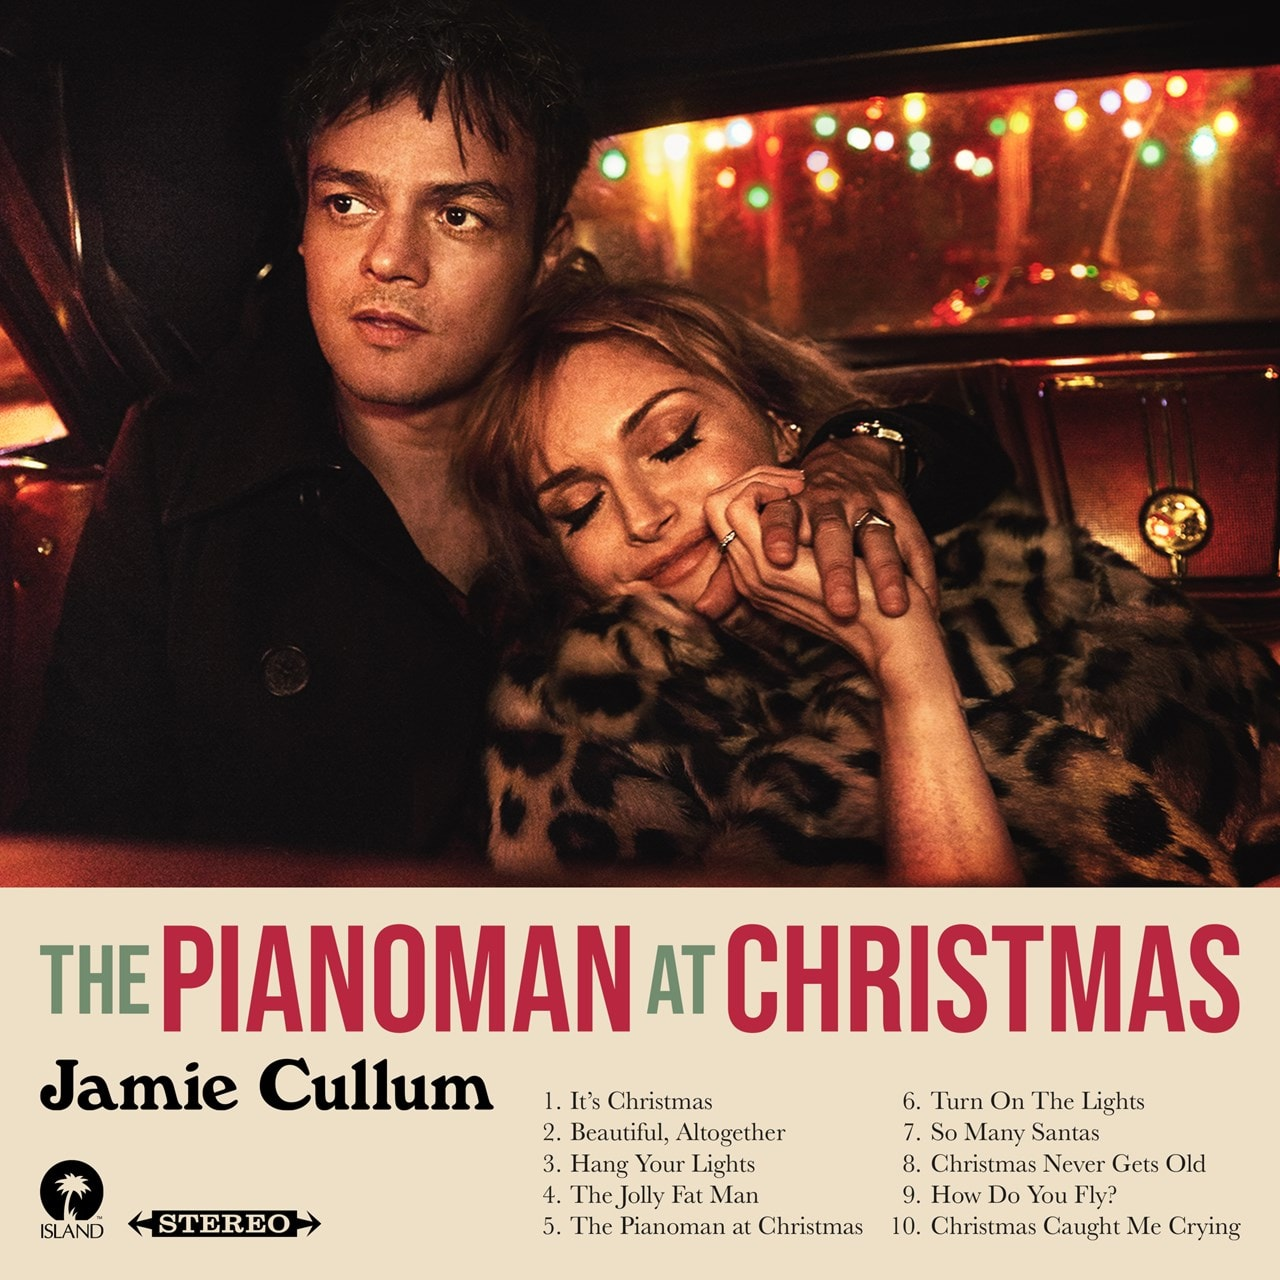 The Pianoman at Christmas - 1